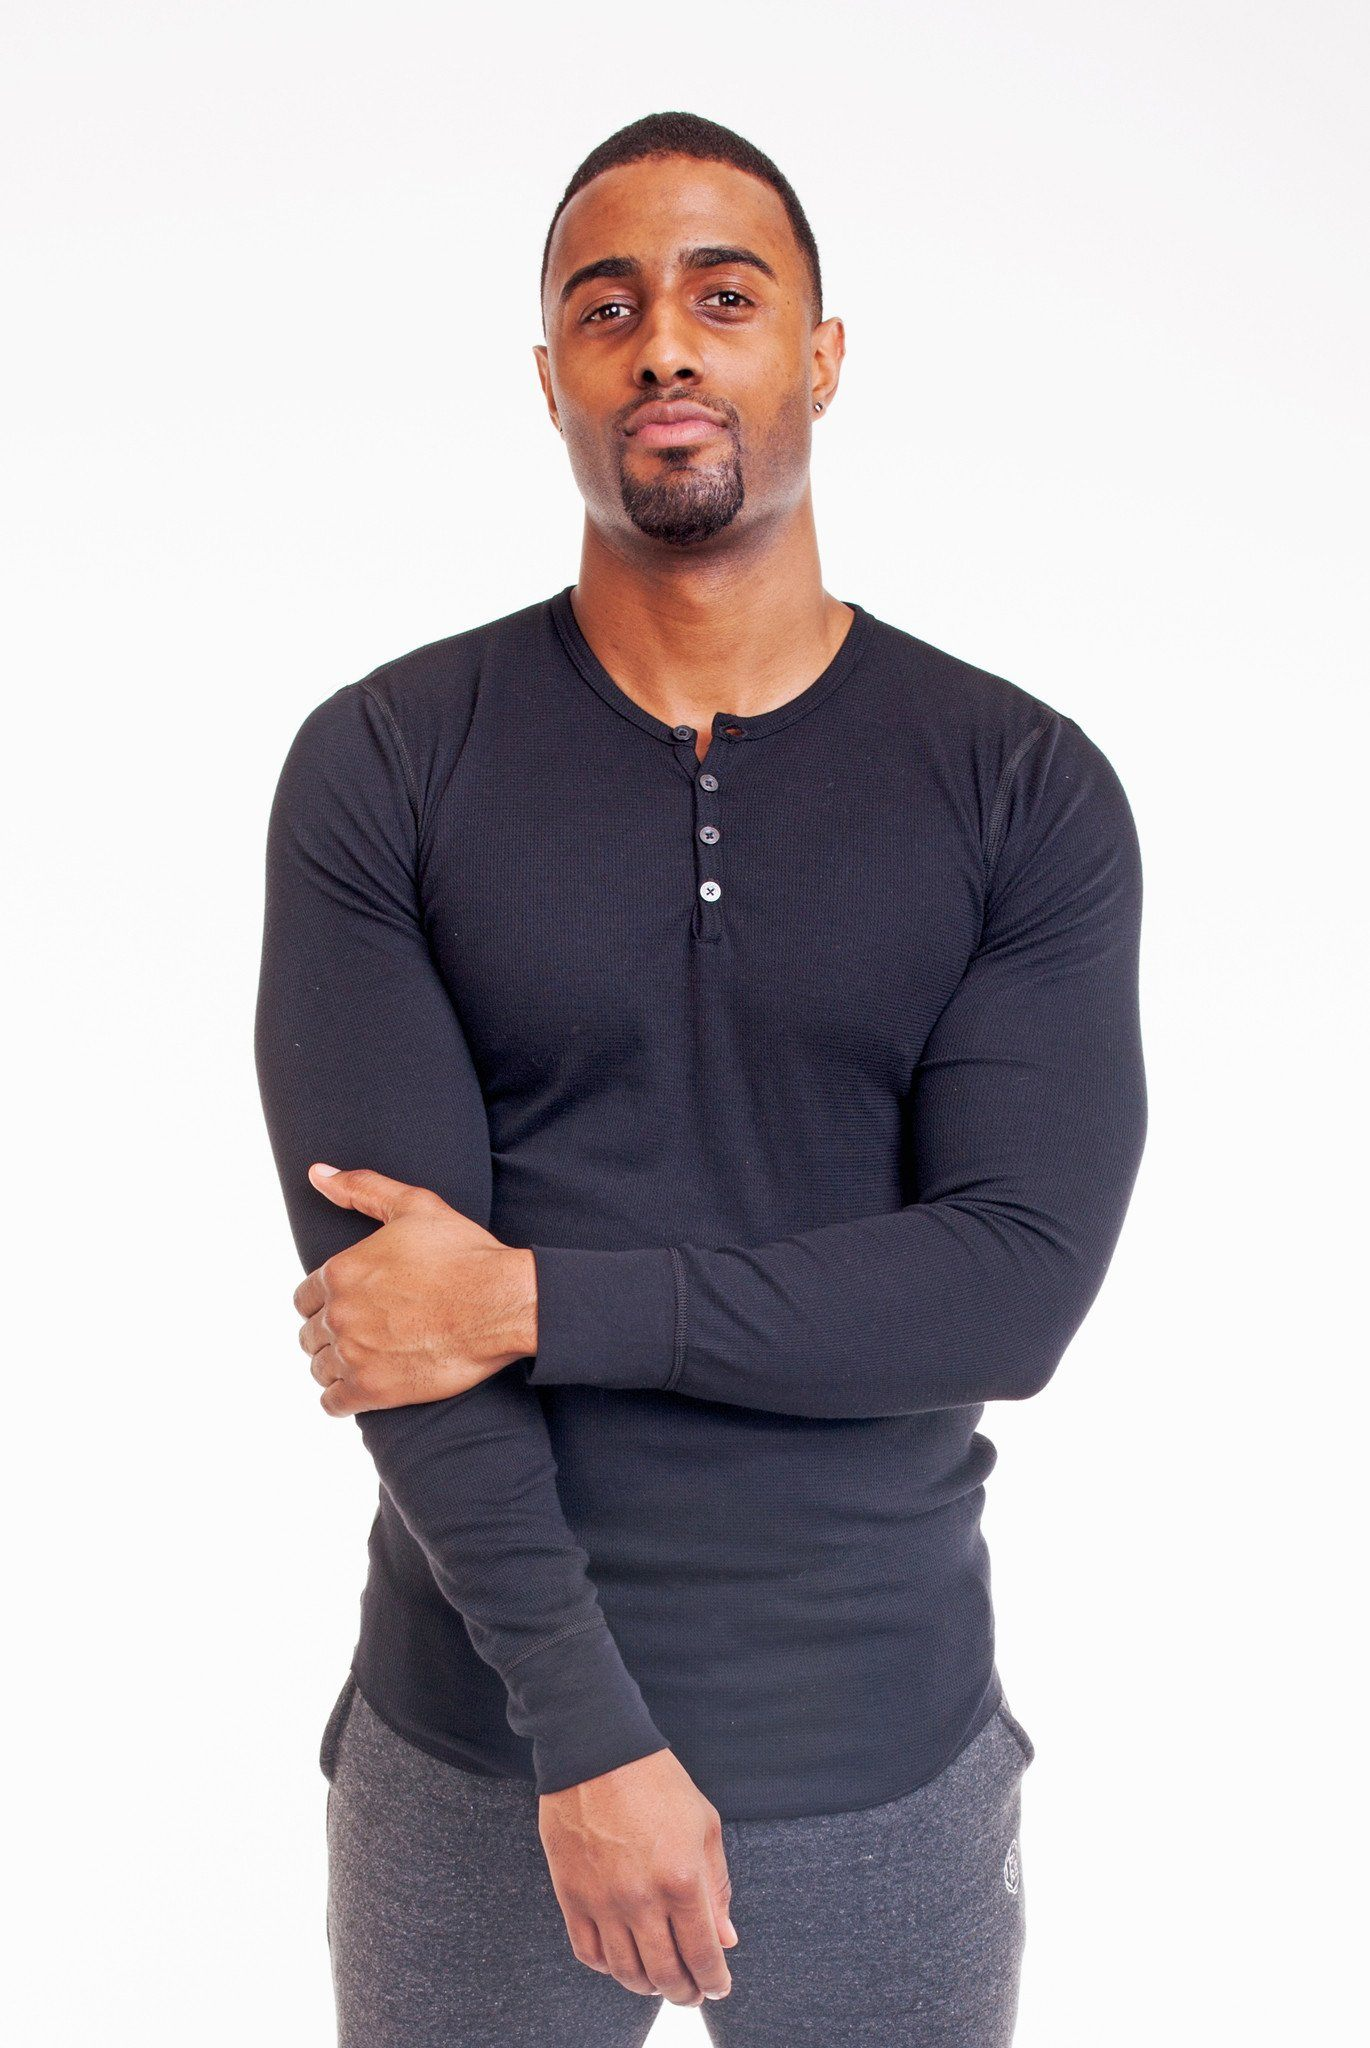 LONG SLEEVE BLACK HENLEY | Poor Little Rich Boy Clothing